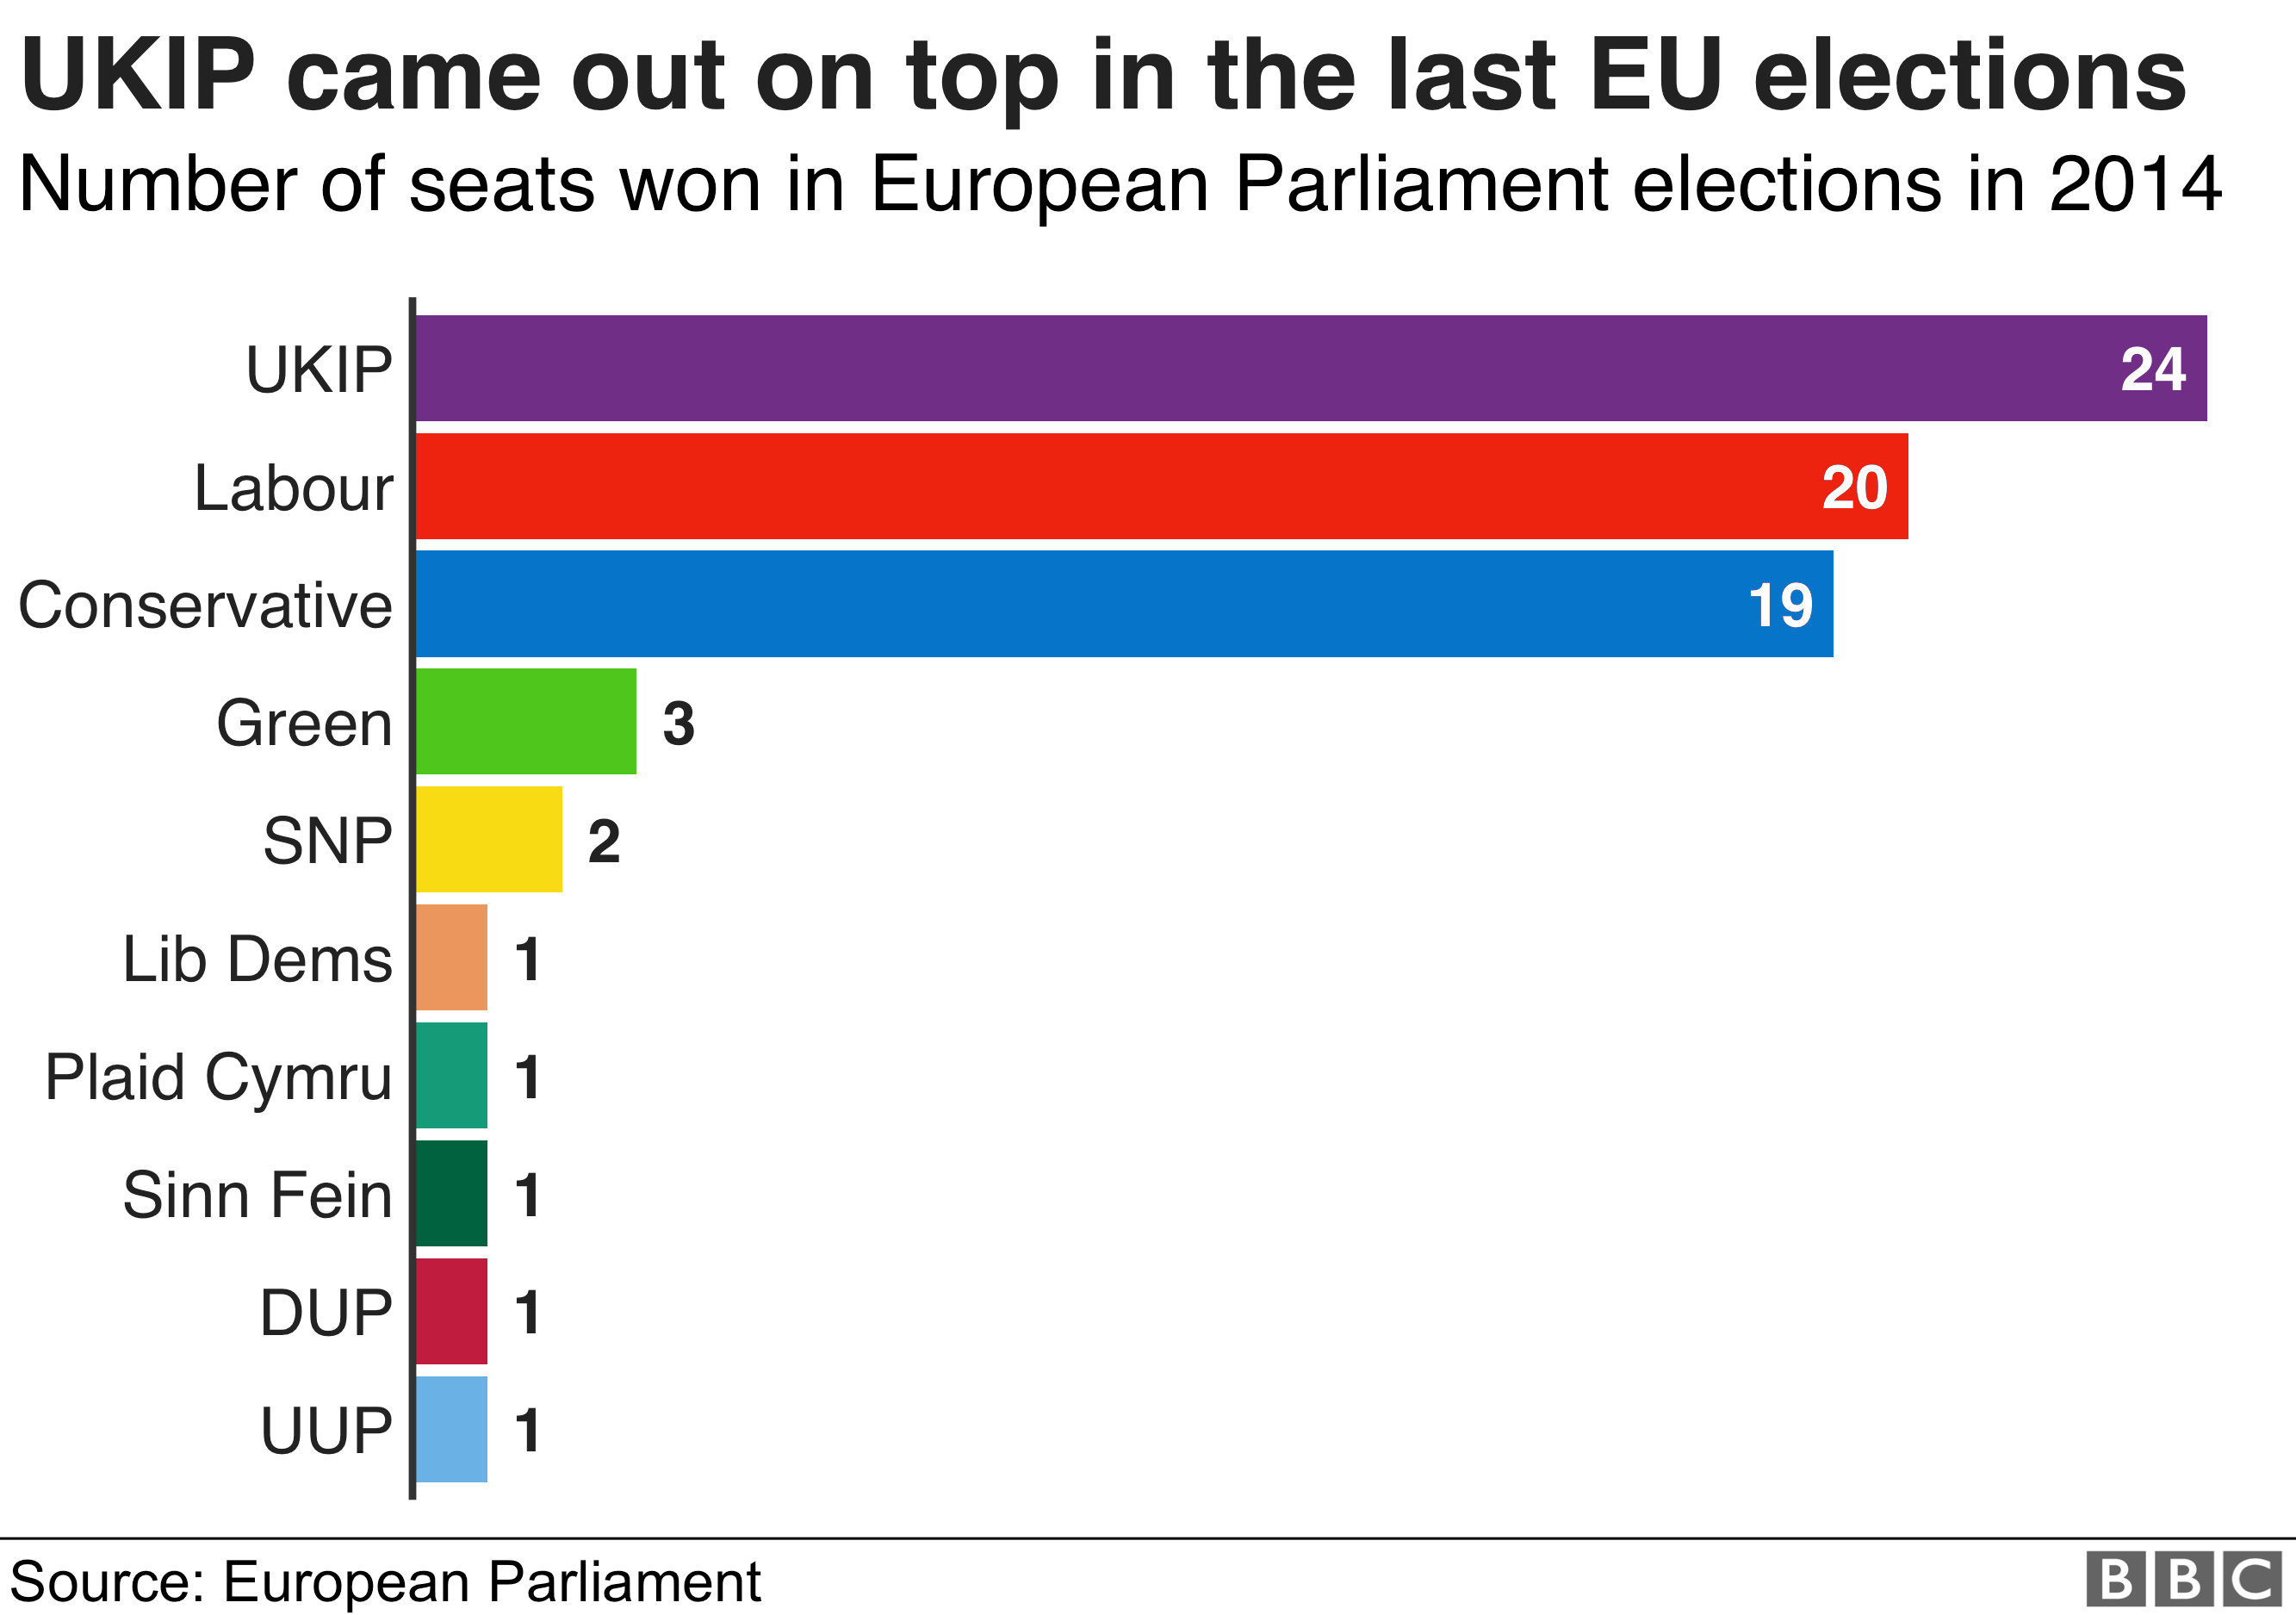 Bar chart of number of seats won in European Parliament elections in 2014 - UKIP came out top followed by Labour then Conservatives